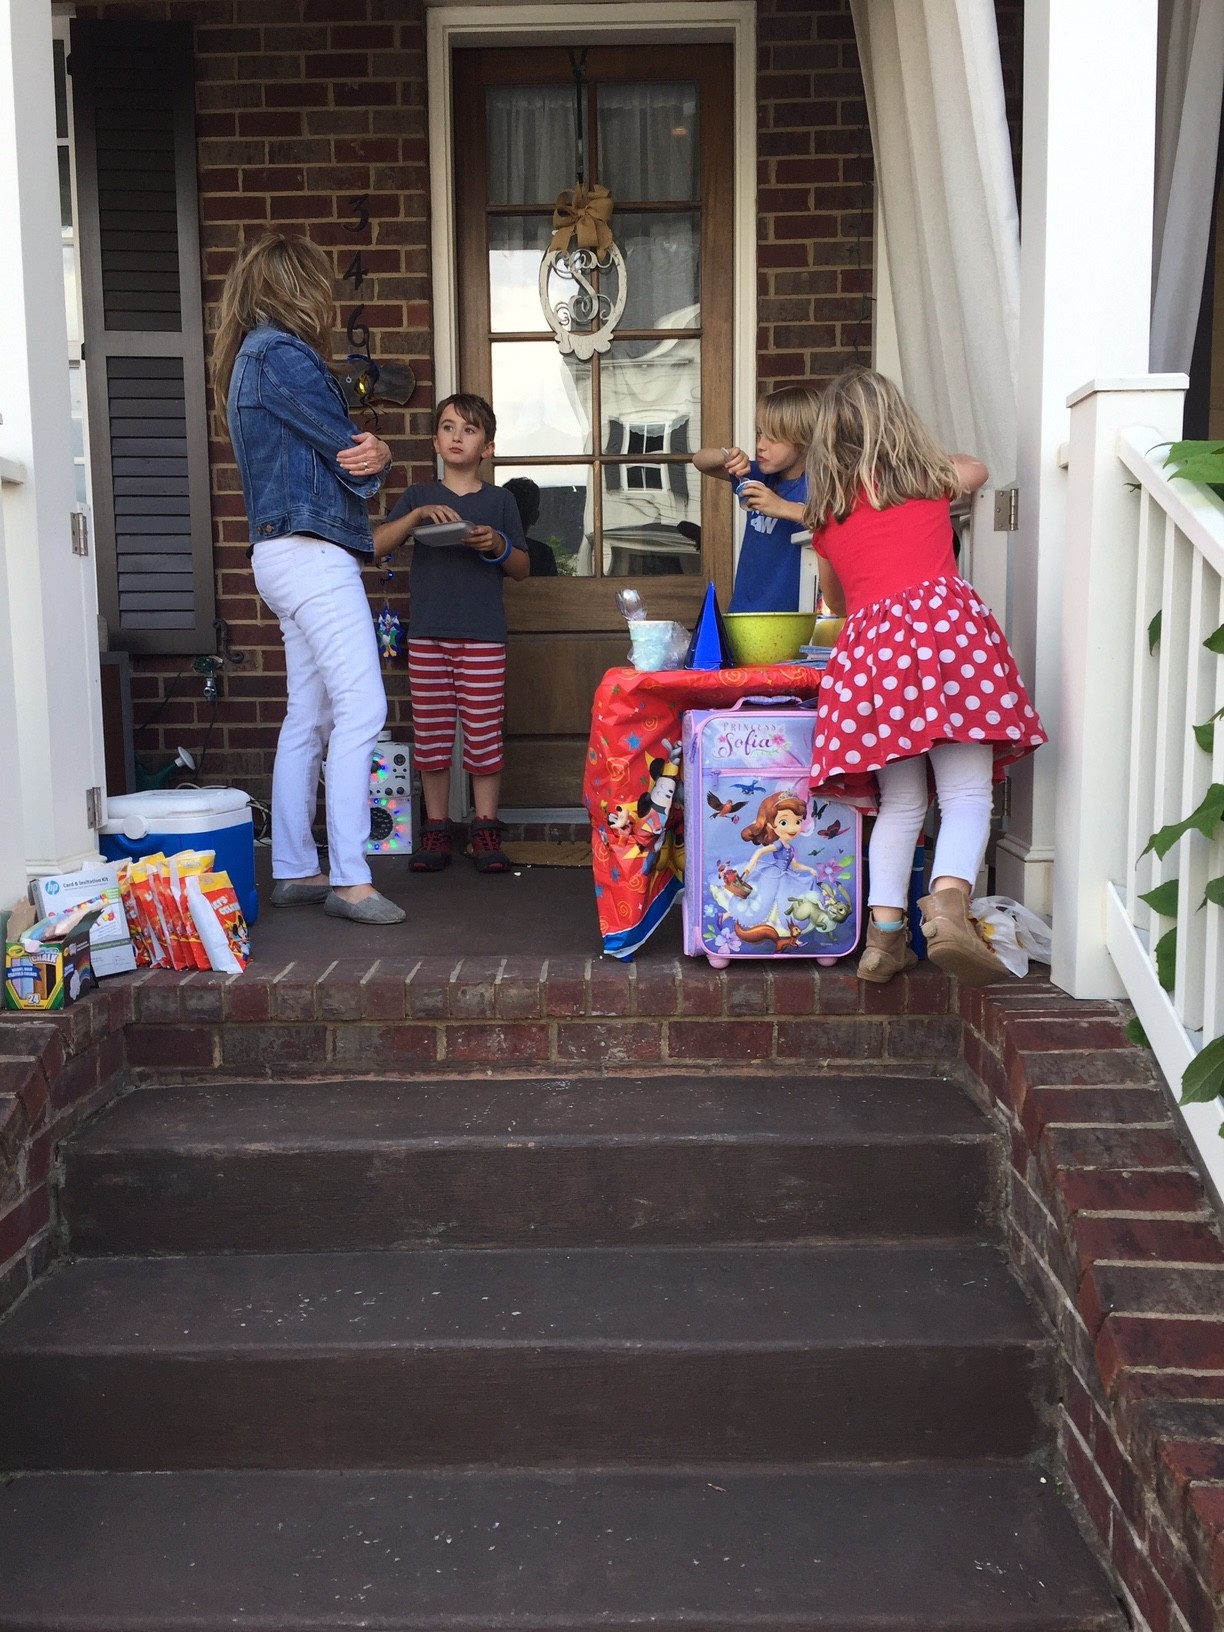 #DisneyKids Flash Playdate. Woman and children on a porch with party items.